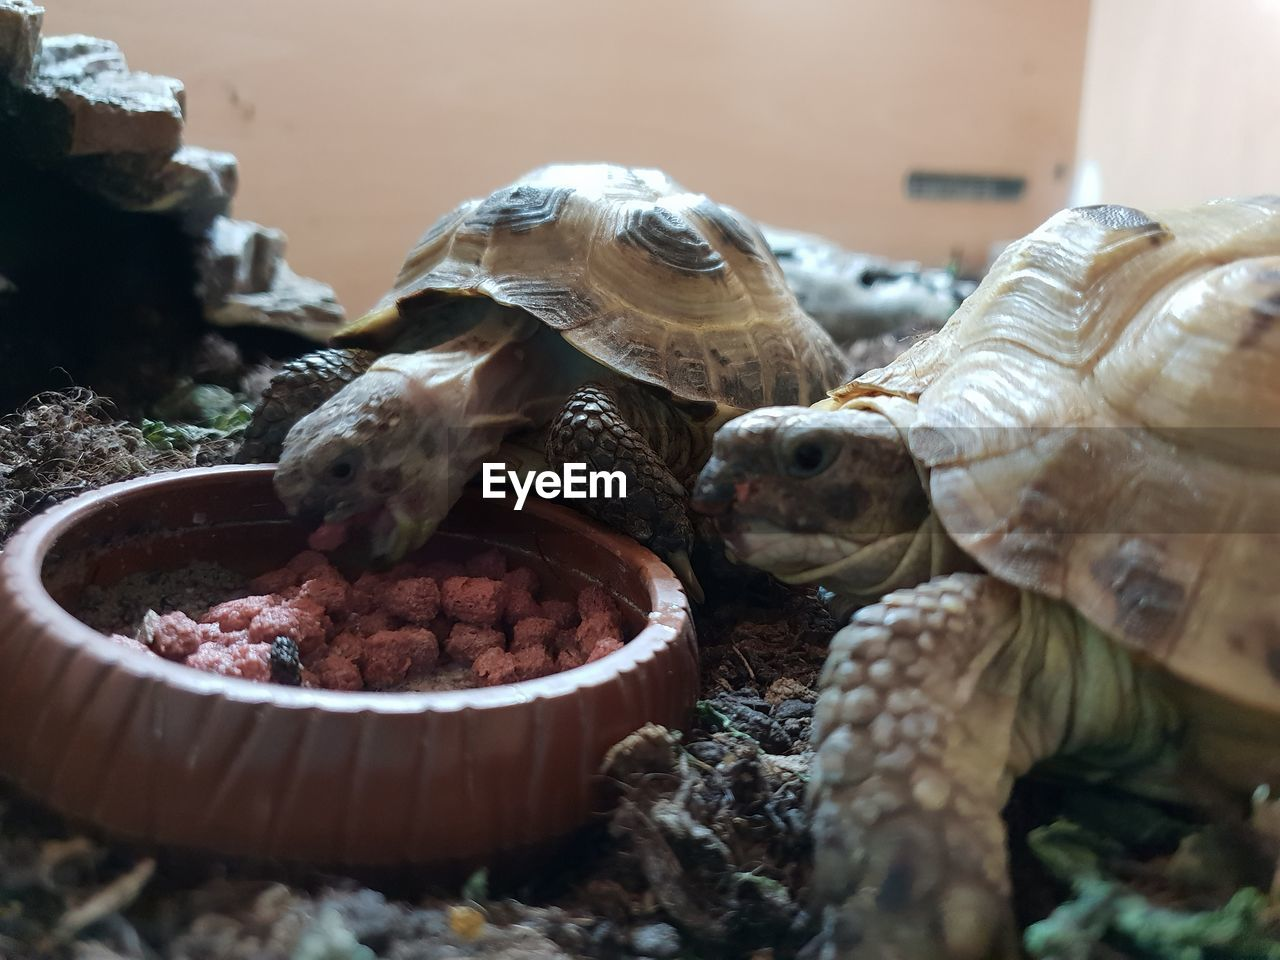 animal, animal themes, animal wildlife, shell, turtle, group of animals, animals in the wild, animal shell, reptile, close-up, selective focus, vertebrate, no people, day, nature, food, food and drink, outdoors, tortoise, medium group of animals, marine